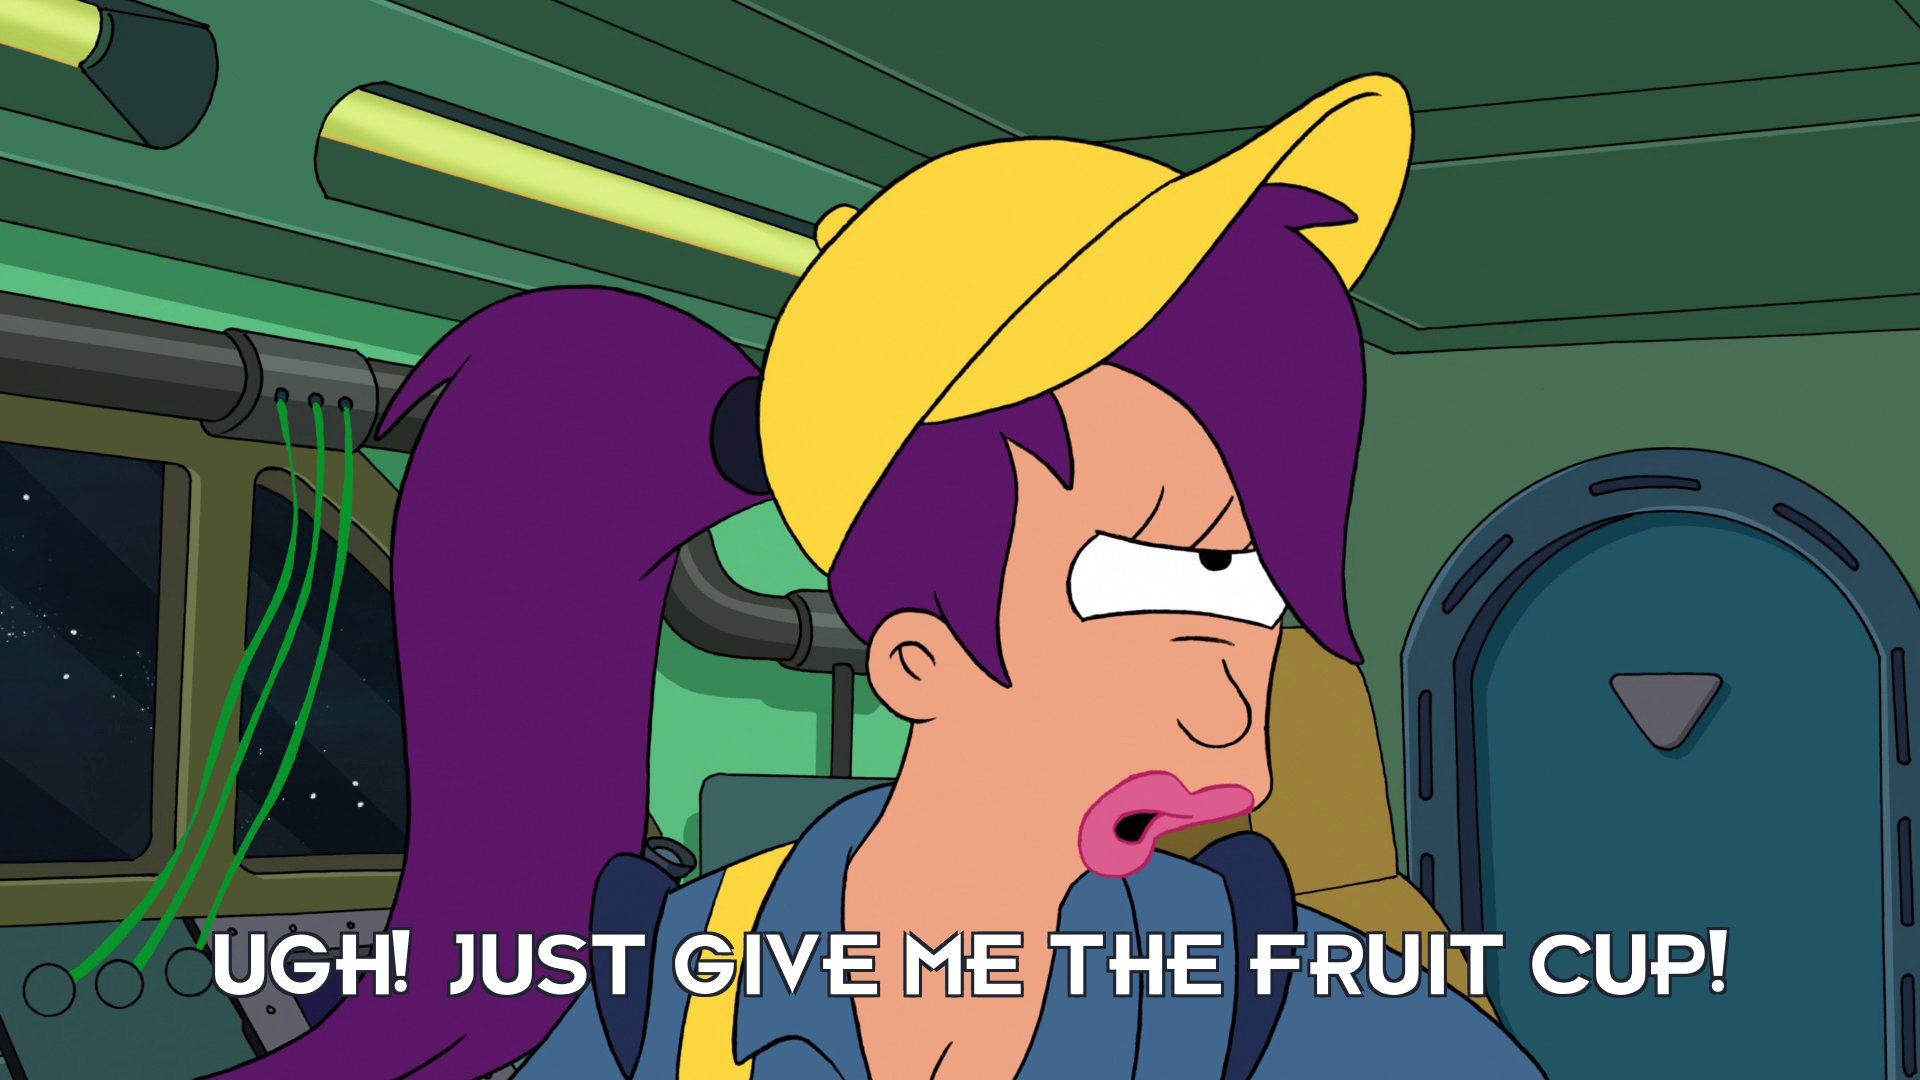 Turanga Leela: Ugh! Just give me the fruit cup!